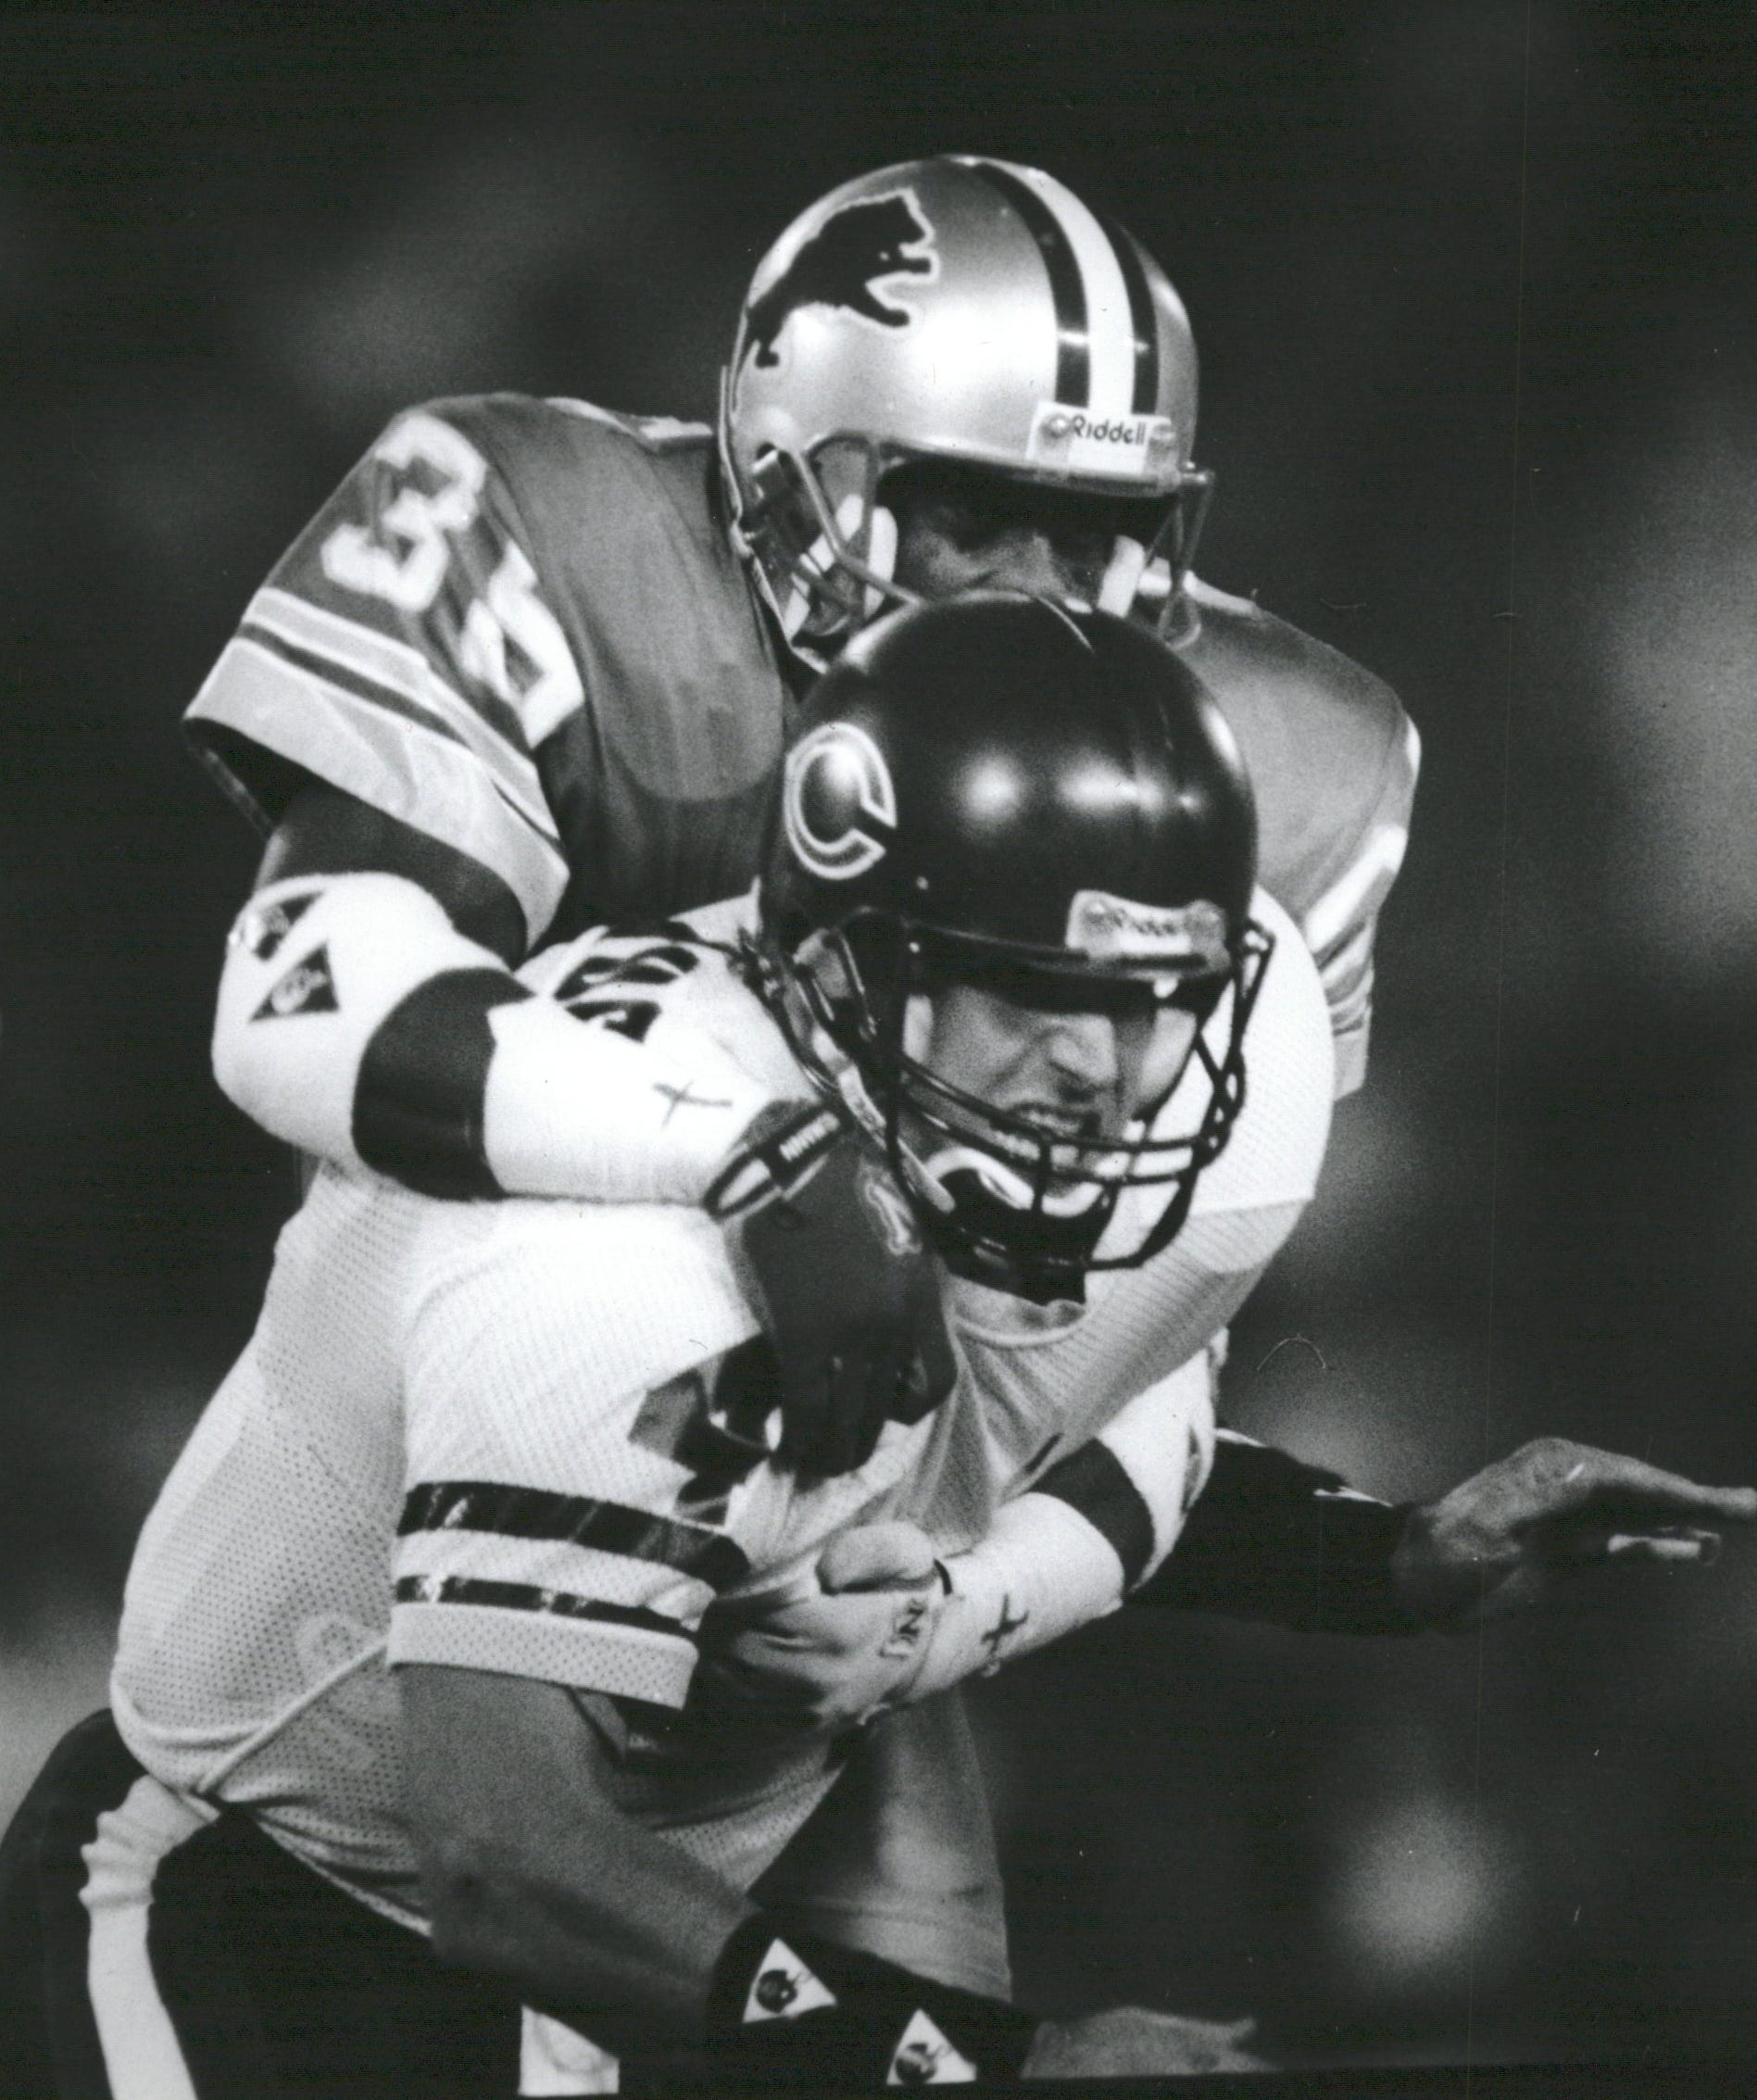 Former Michigan quarterback Jim Harbaugh fumbled twice and threw four interceptions in a Thanksgiving loss to the Lions in 1991.